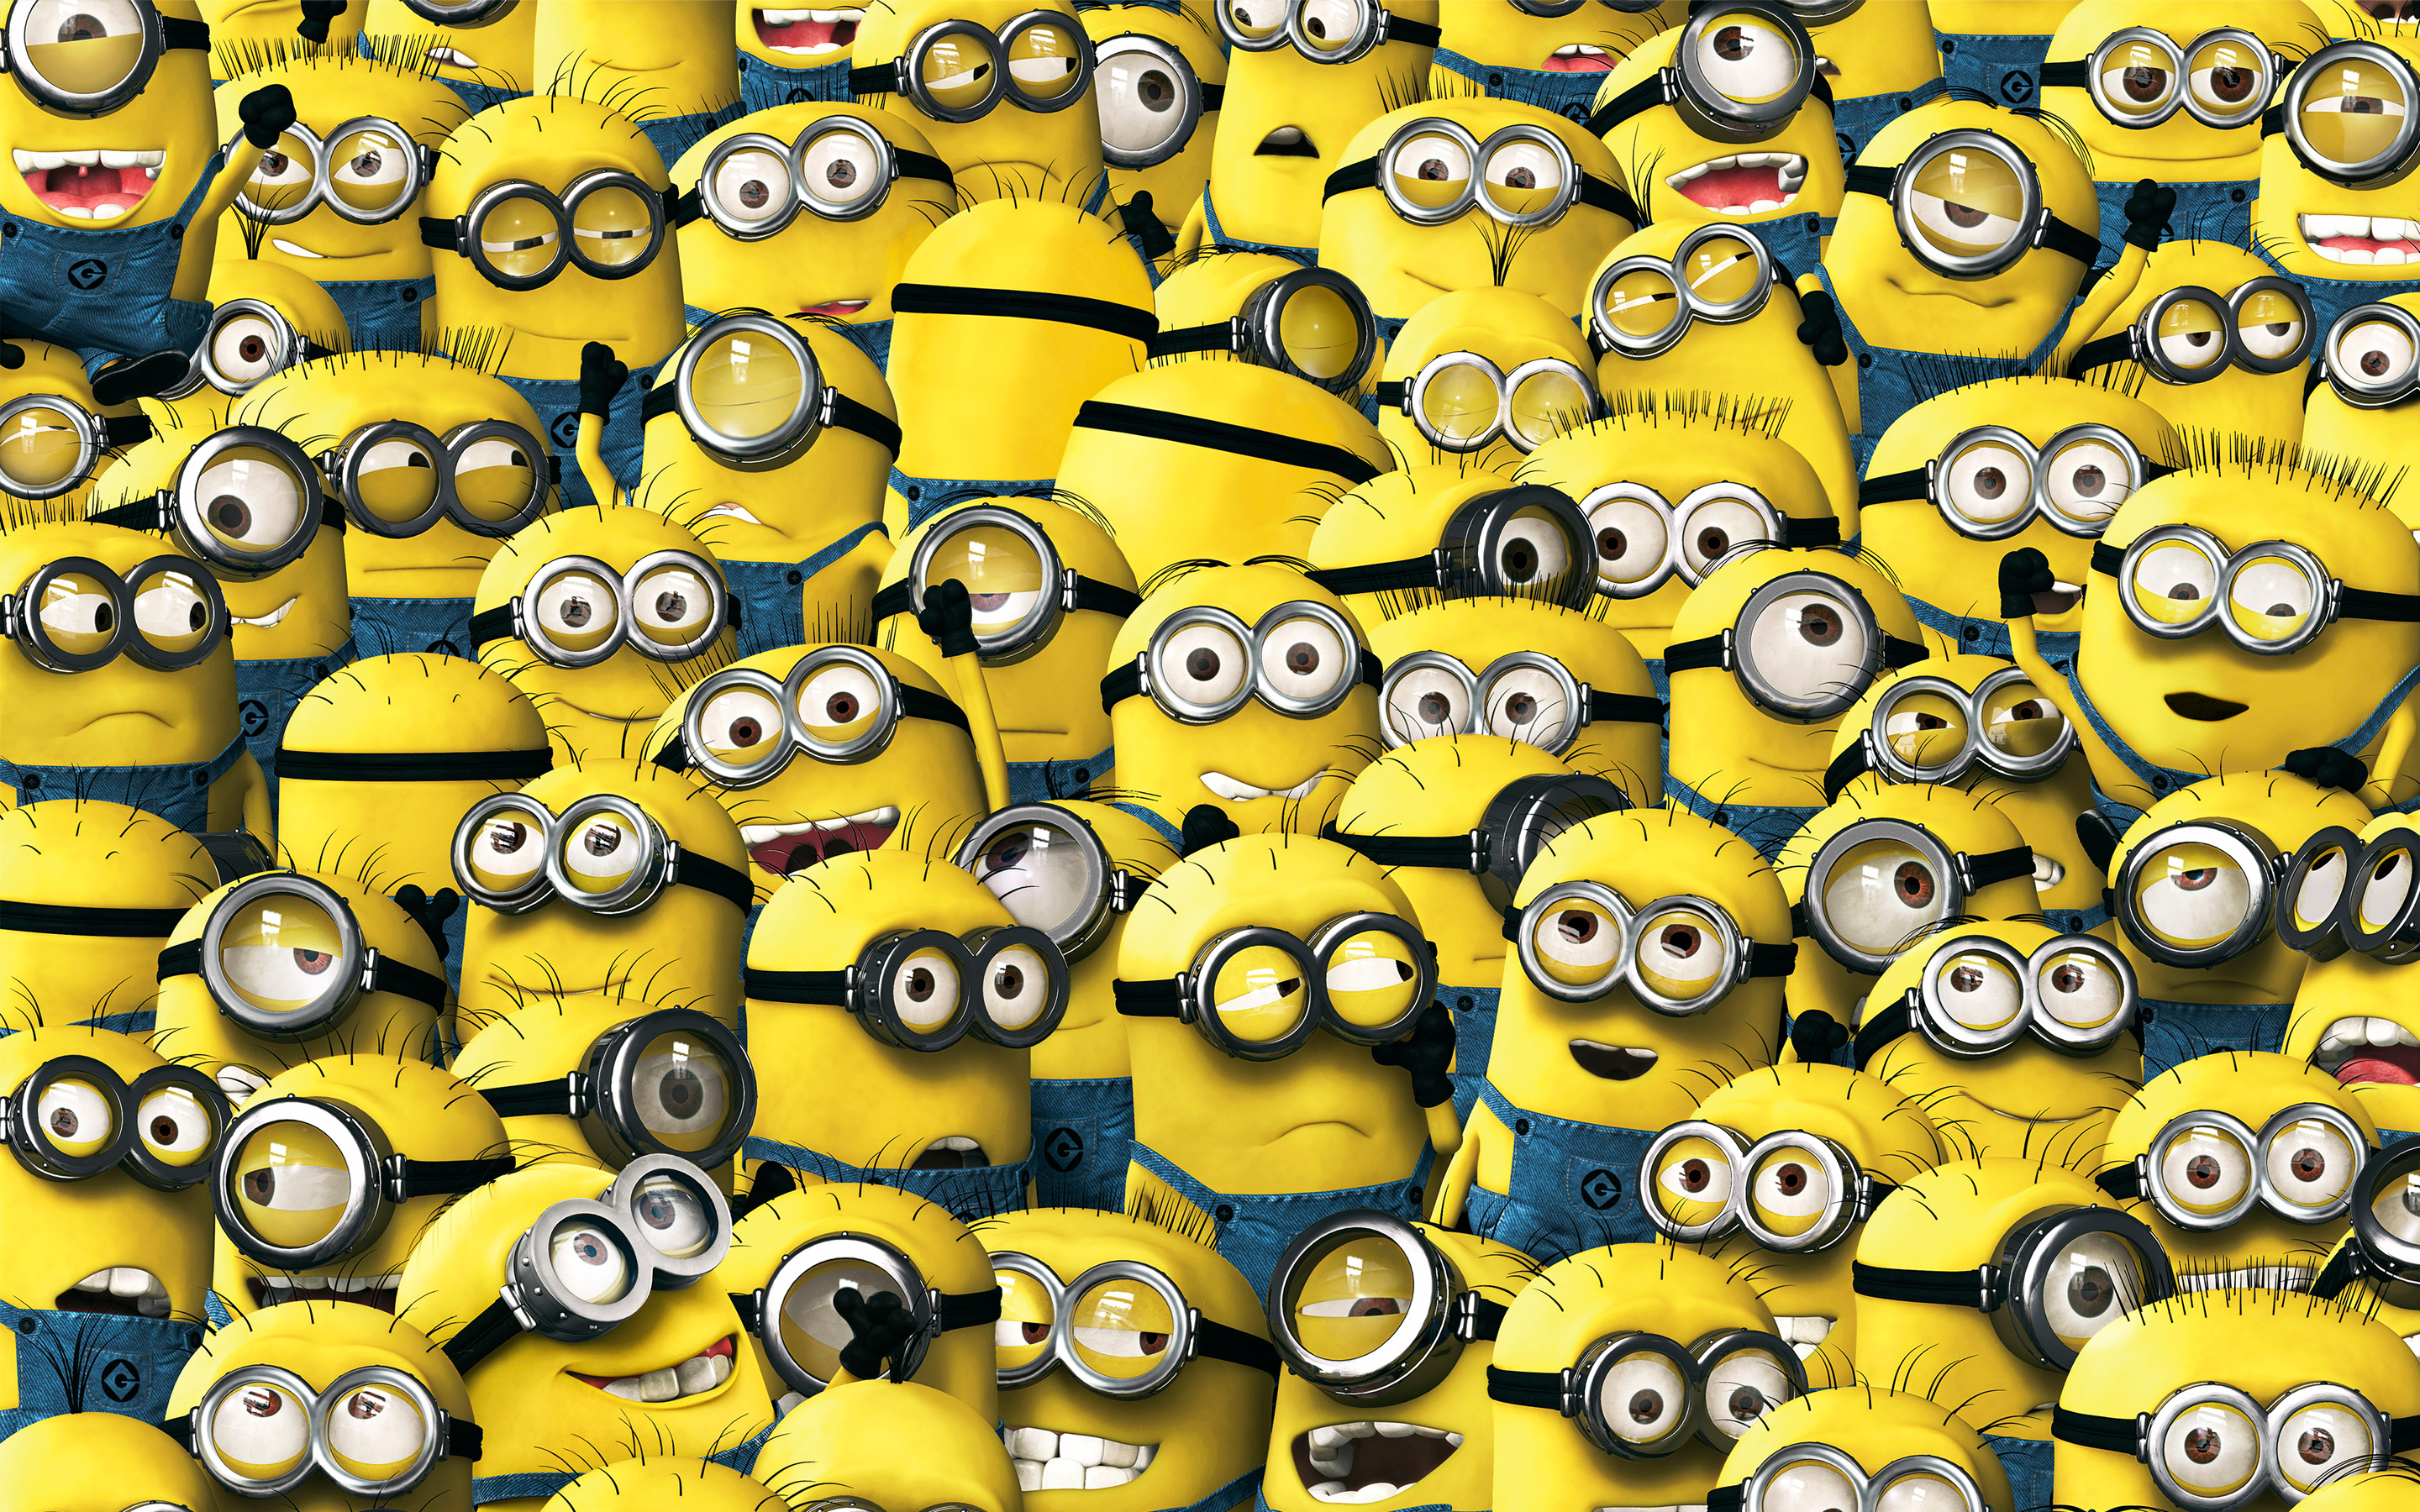 Minion wallpaper wallpapersafari - Despicable me minion screensaver ...